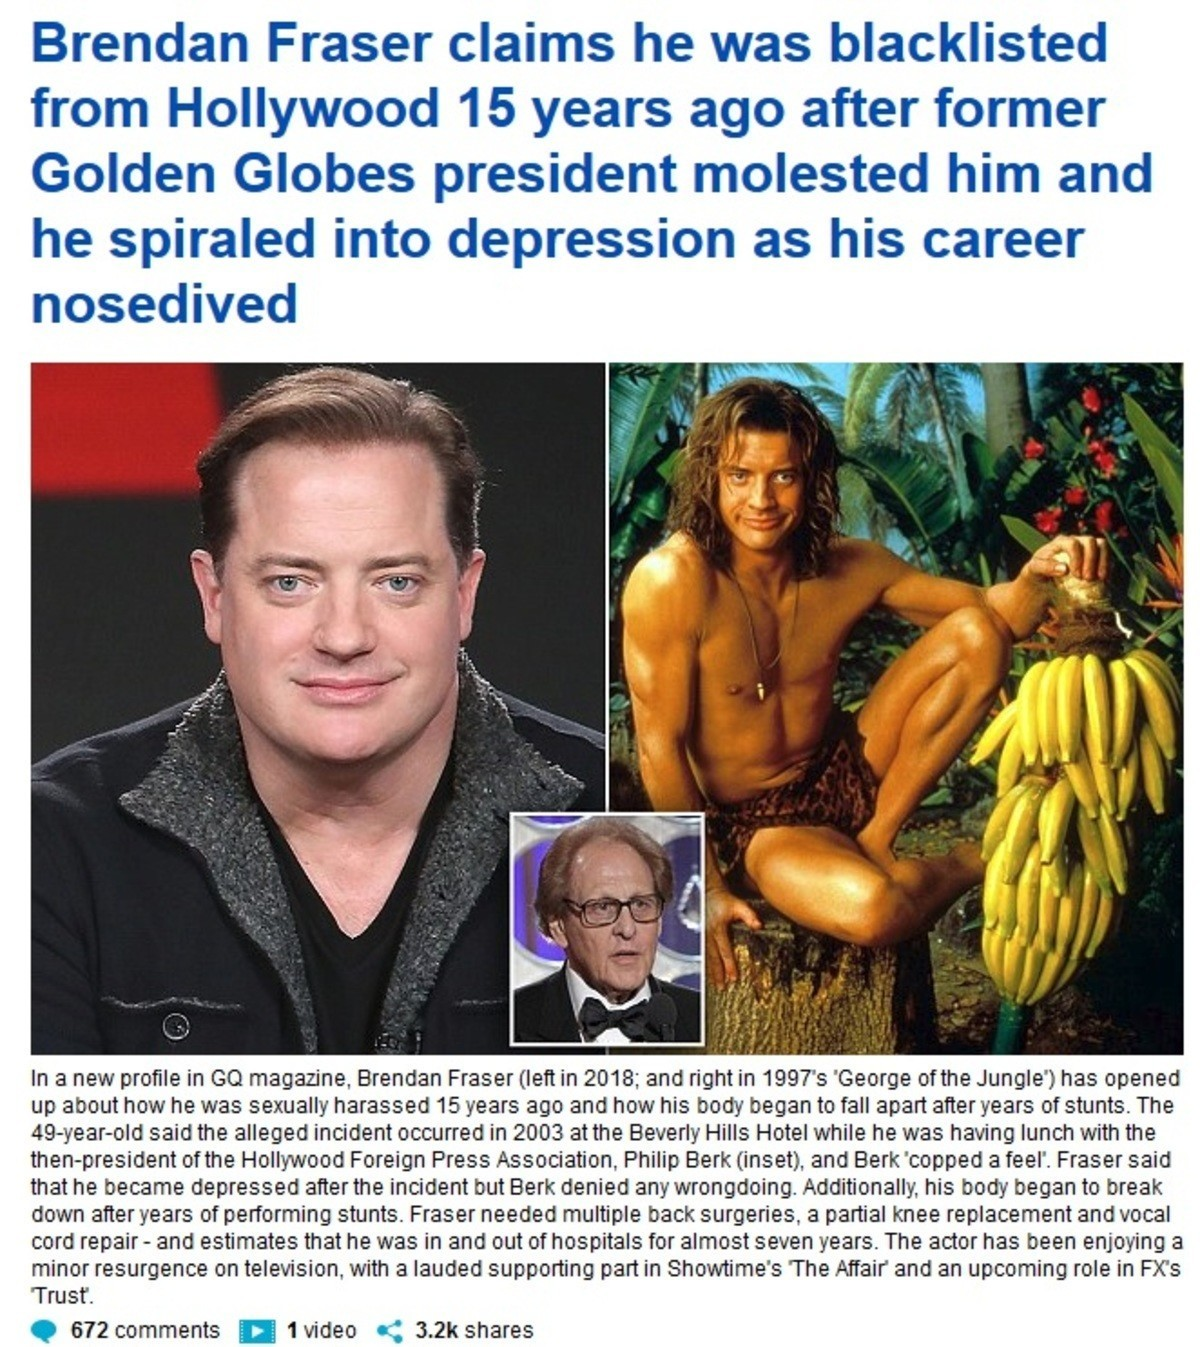 Bad Touch.. .. Seems more and more males are admitting Hollywood had a casting couch for men. I think both Terry Crews & Rob Schneider admitted something similar for them.